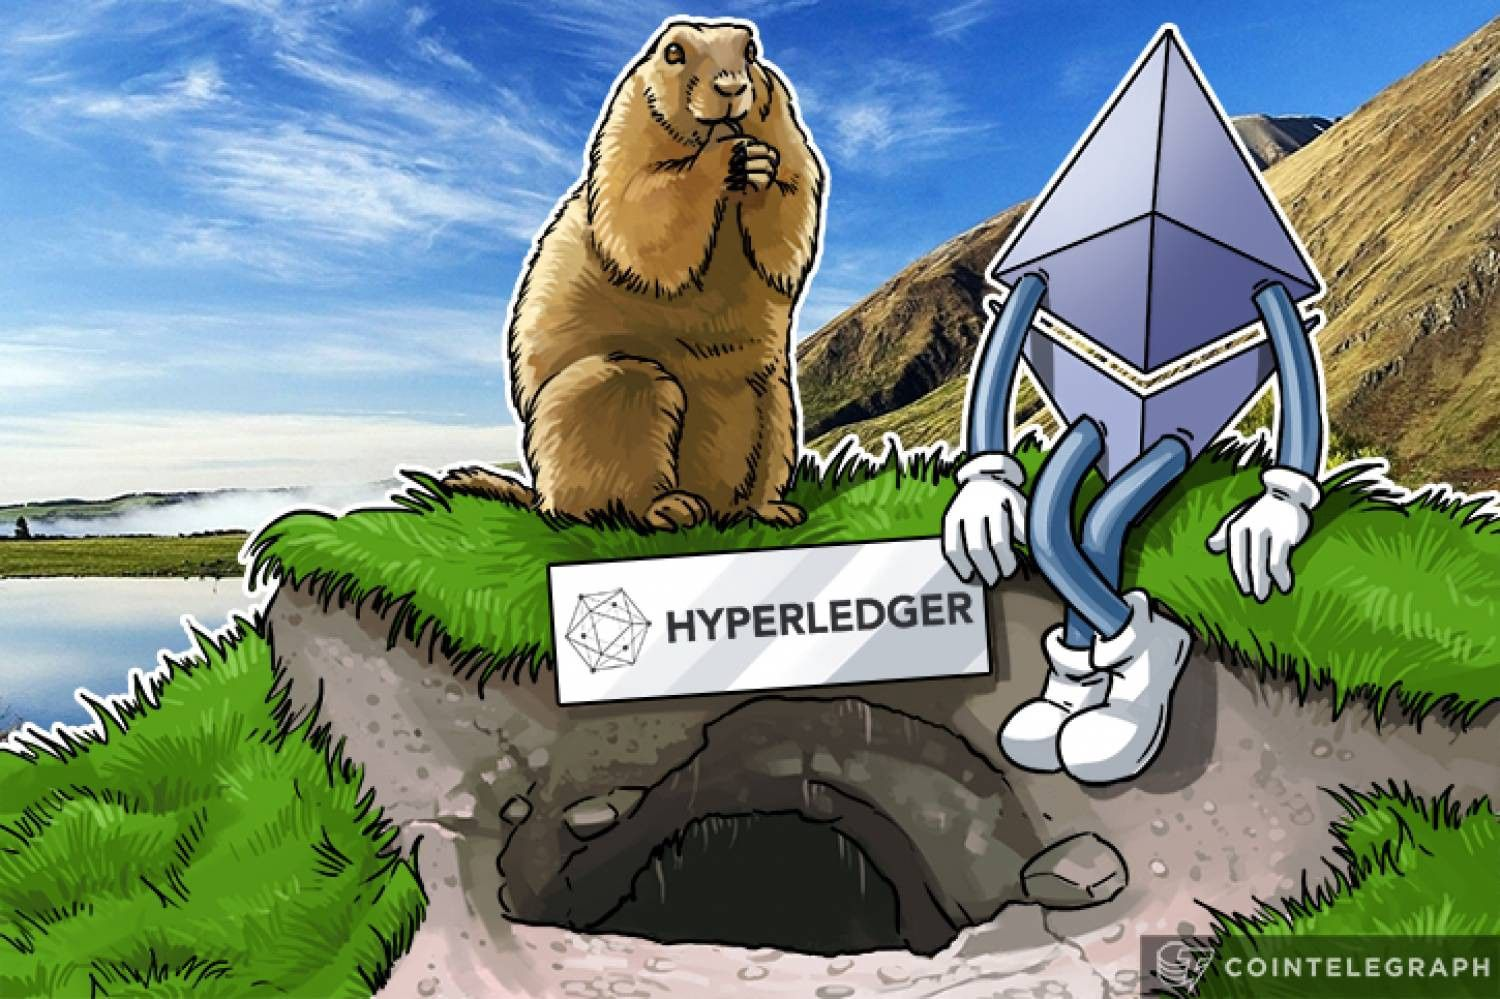 ethereum price prediction Contract, Competition, Smart